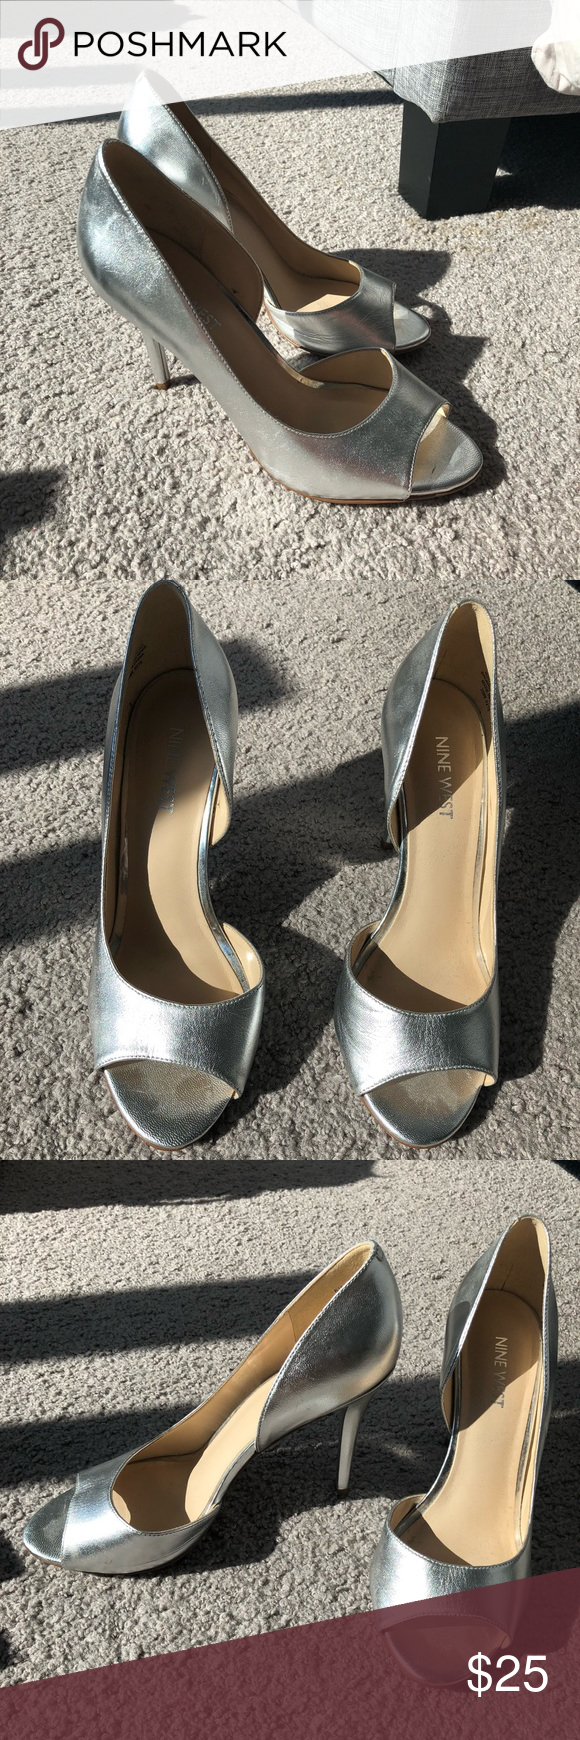 Nine West Silver Pumps Open Toed Silver Nine West Pumps Great As A Bridesmaids Heel Worn Once So Mild Wear On The Bottom 3 And 3 4 Silver Pumps Bridesmaids Heels Heels